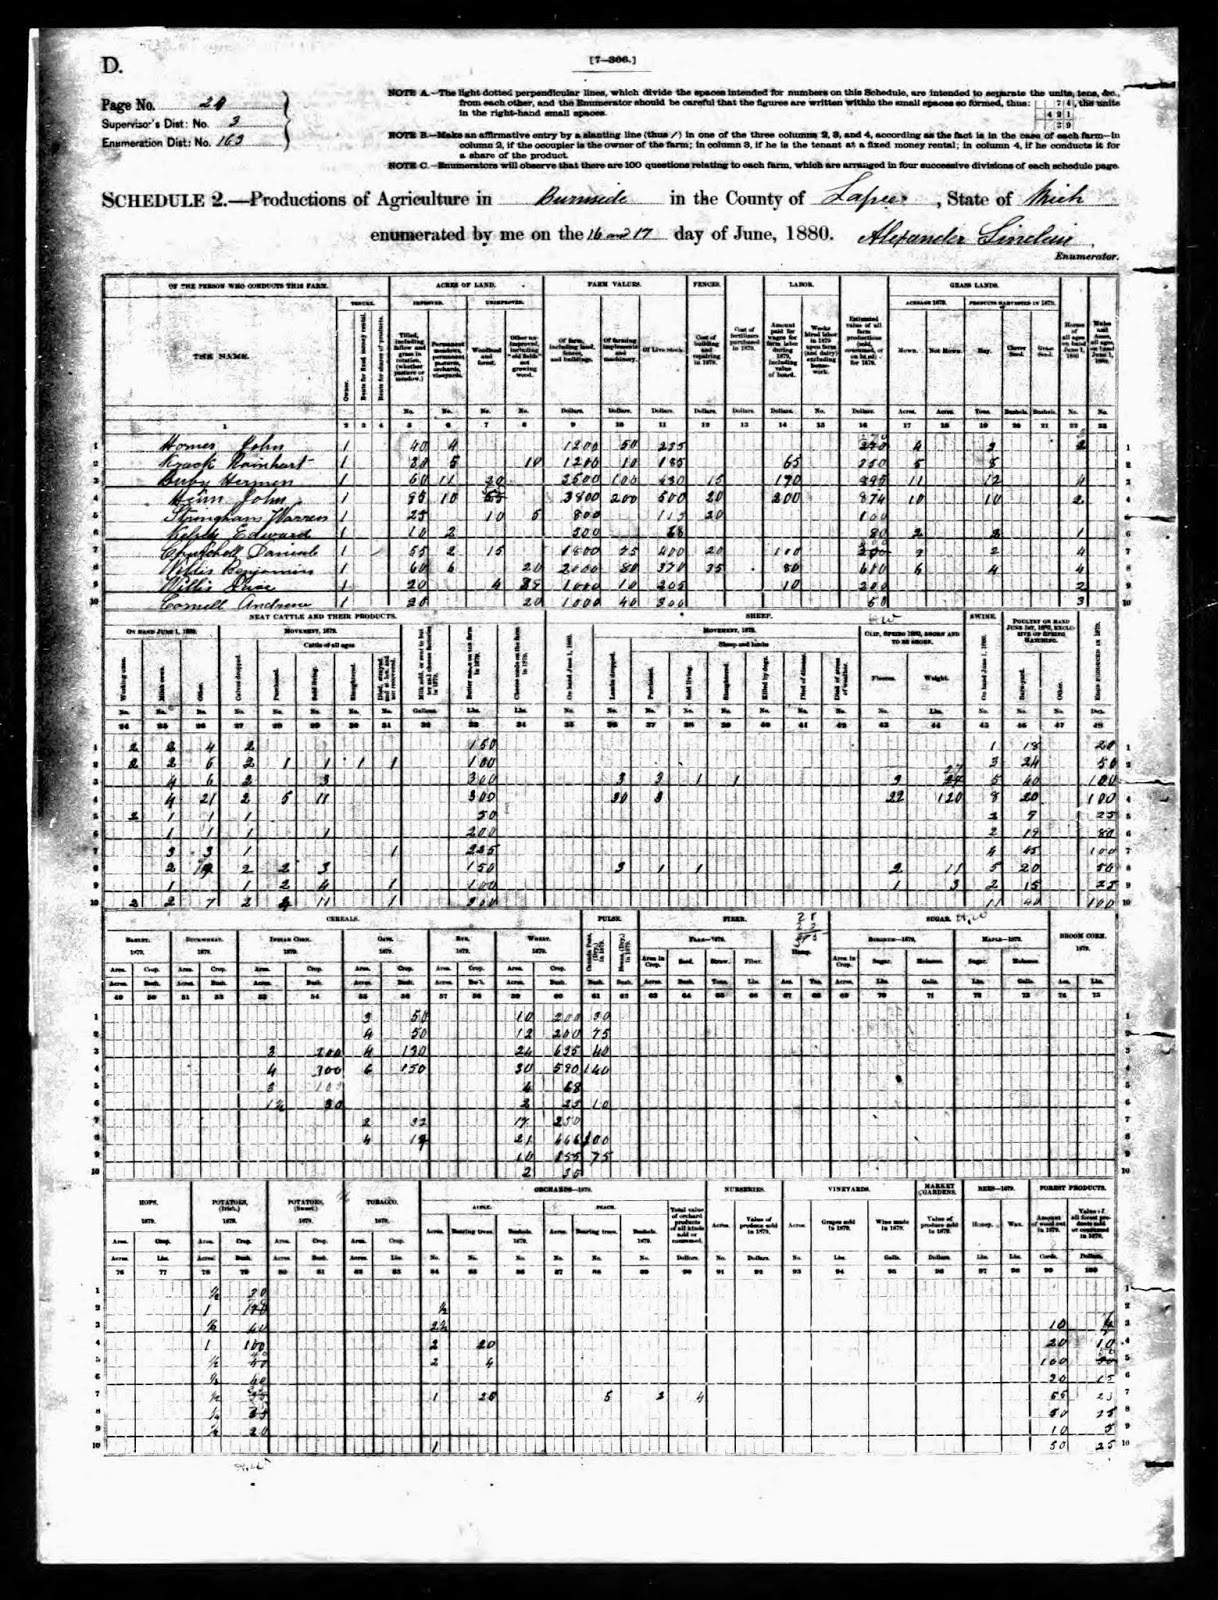 Climbing My Family Tree: John Henn, 1880 non population schedule